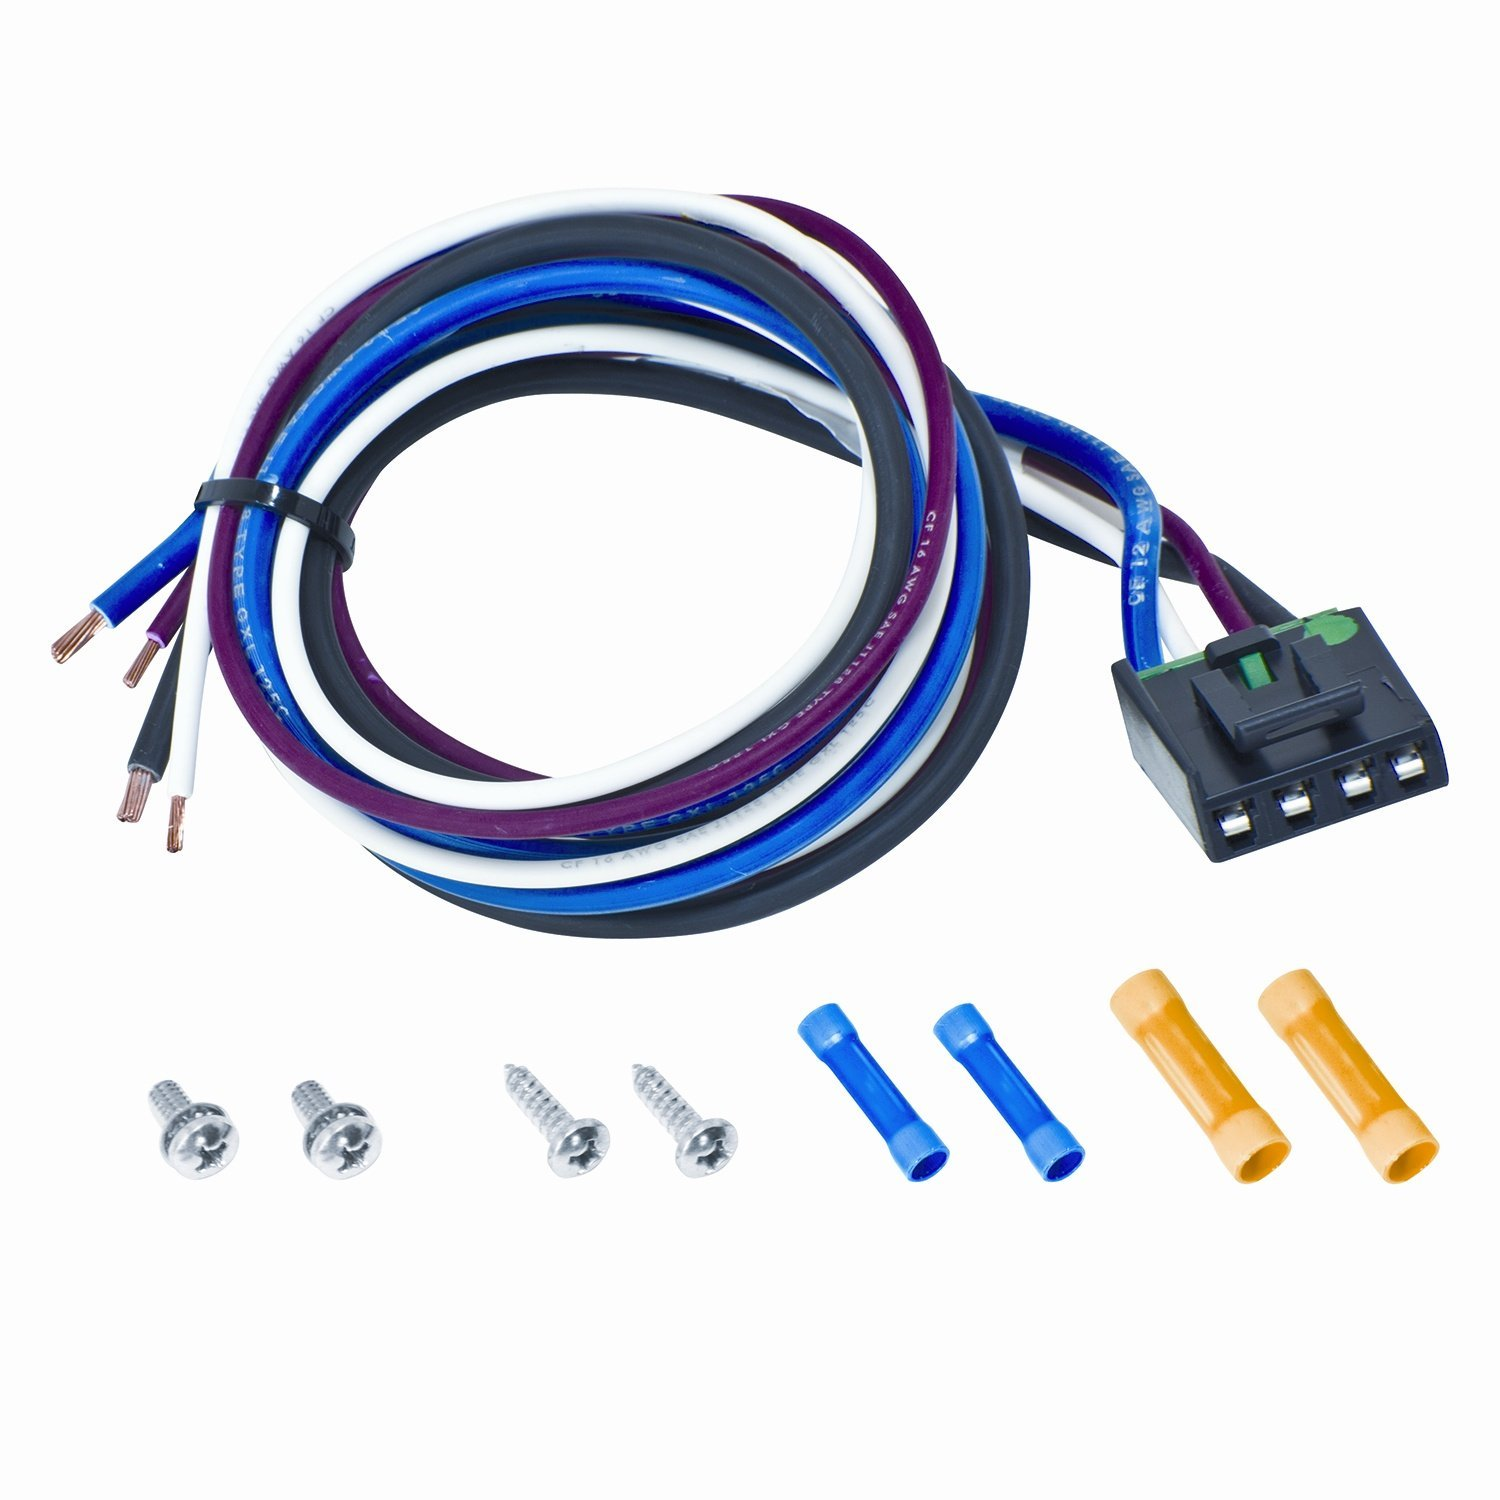 hight resolution of in snap wiring harness wiring library mix in snap wiring harness